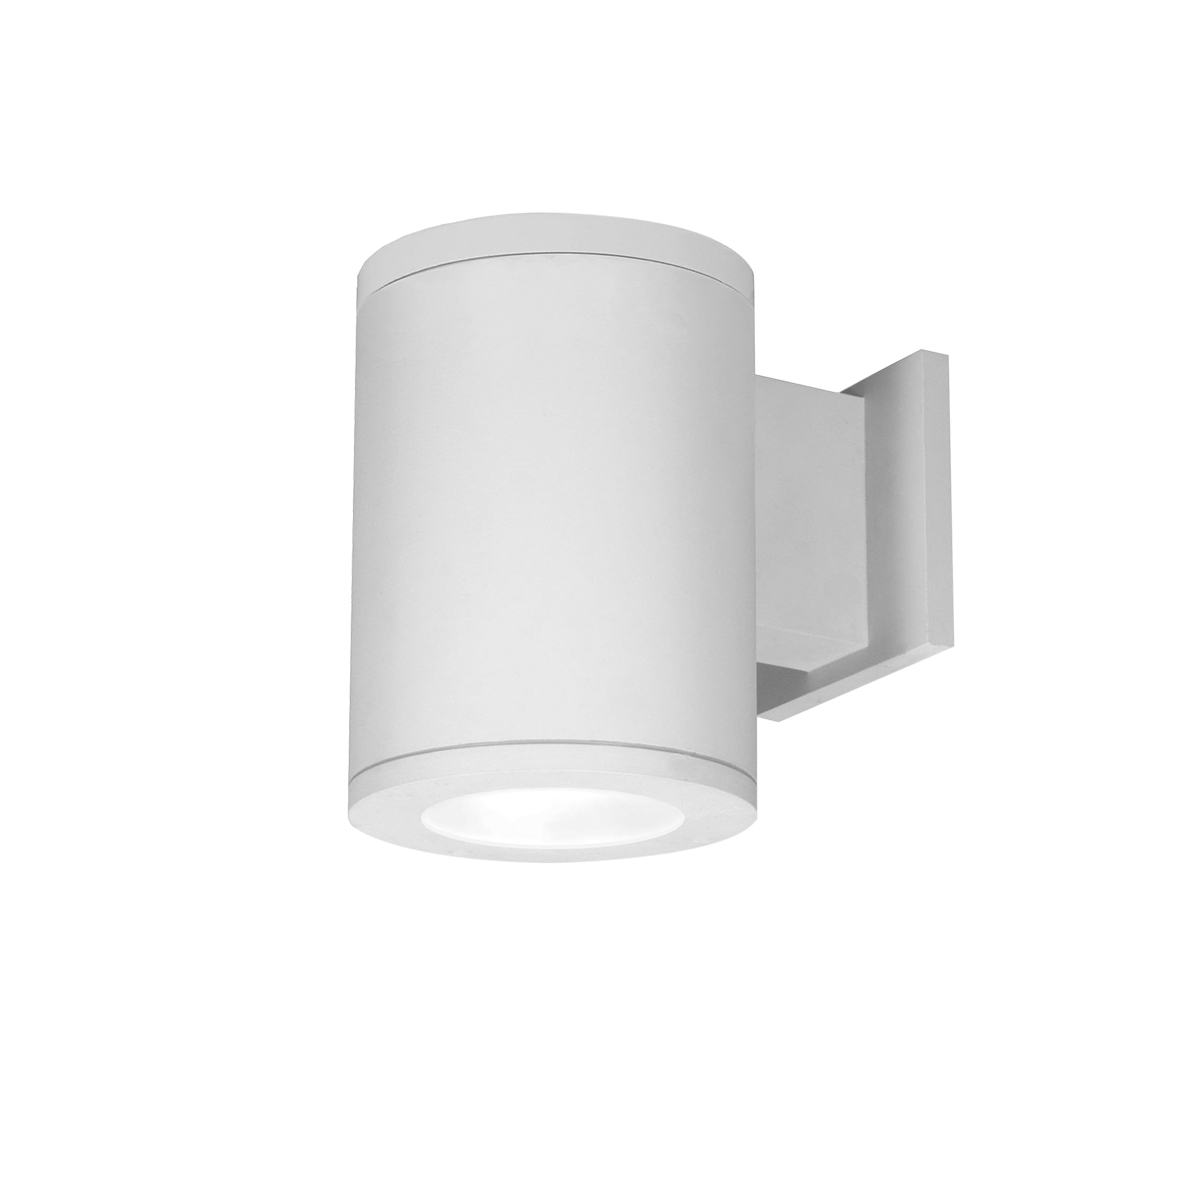 ledme directional ceiling light from the exterminator collection by wac lighting wtk led20s 30 pt